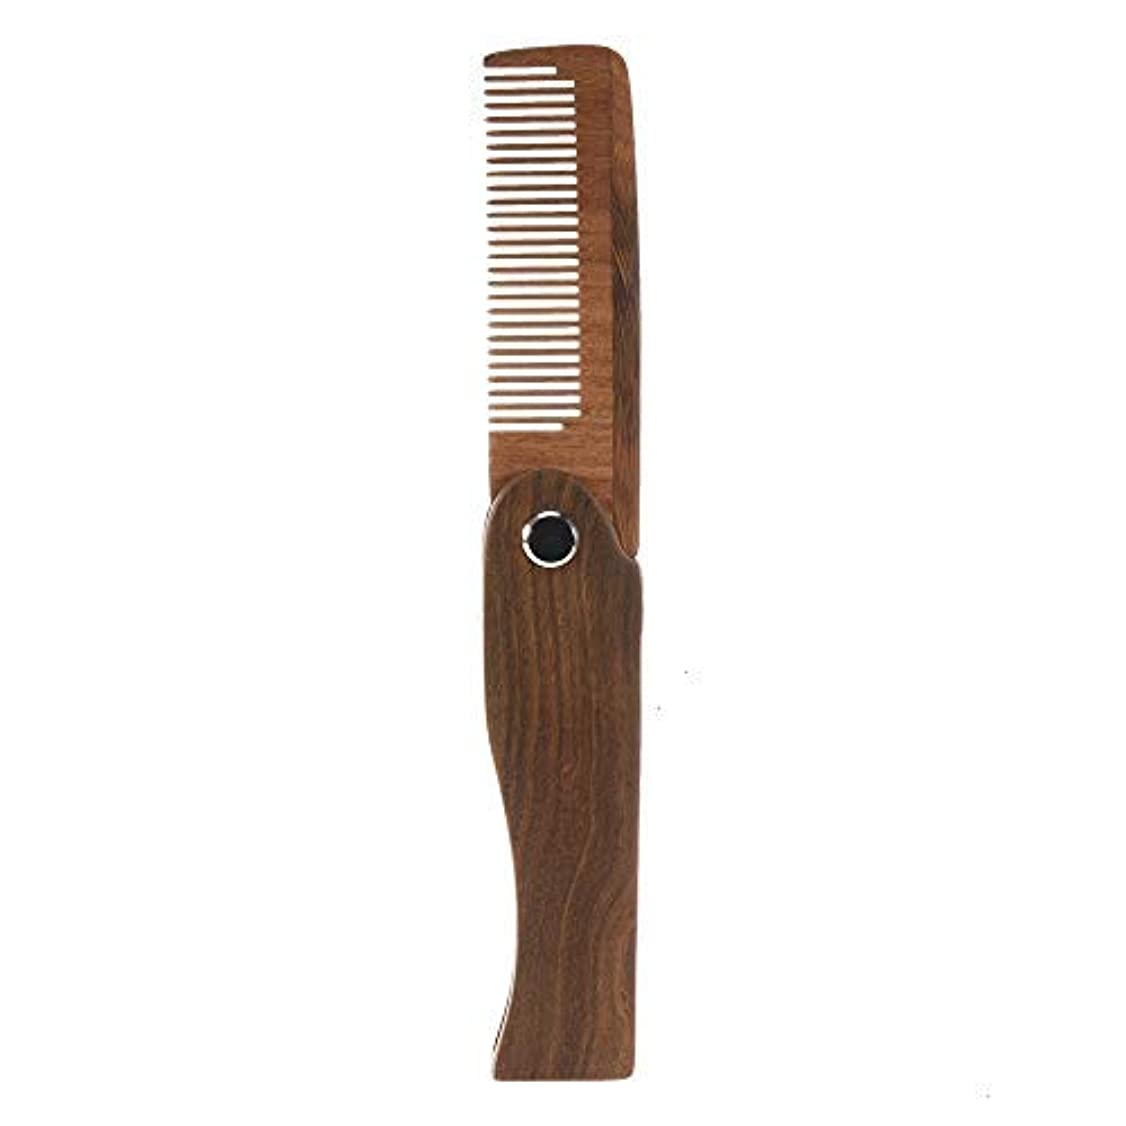 緯度火山学災難Feeko Folding Wooden Comb, 1 PC Pocket Size Hair Beard Fold Wooden Comb Durable Anti-Static Sandalwood Comb Every...